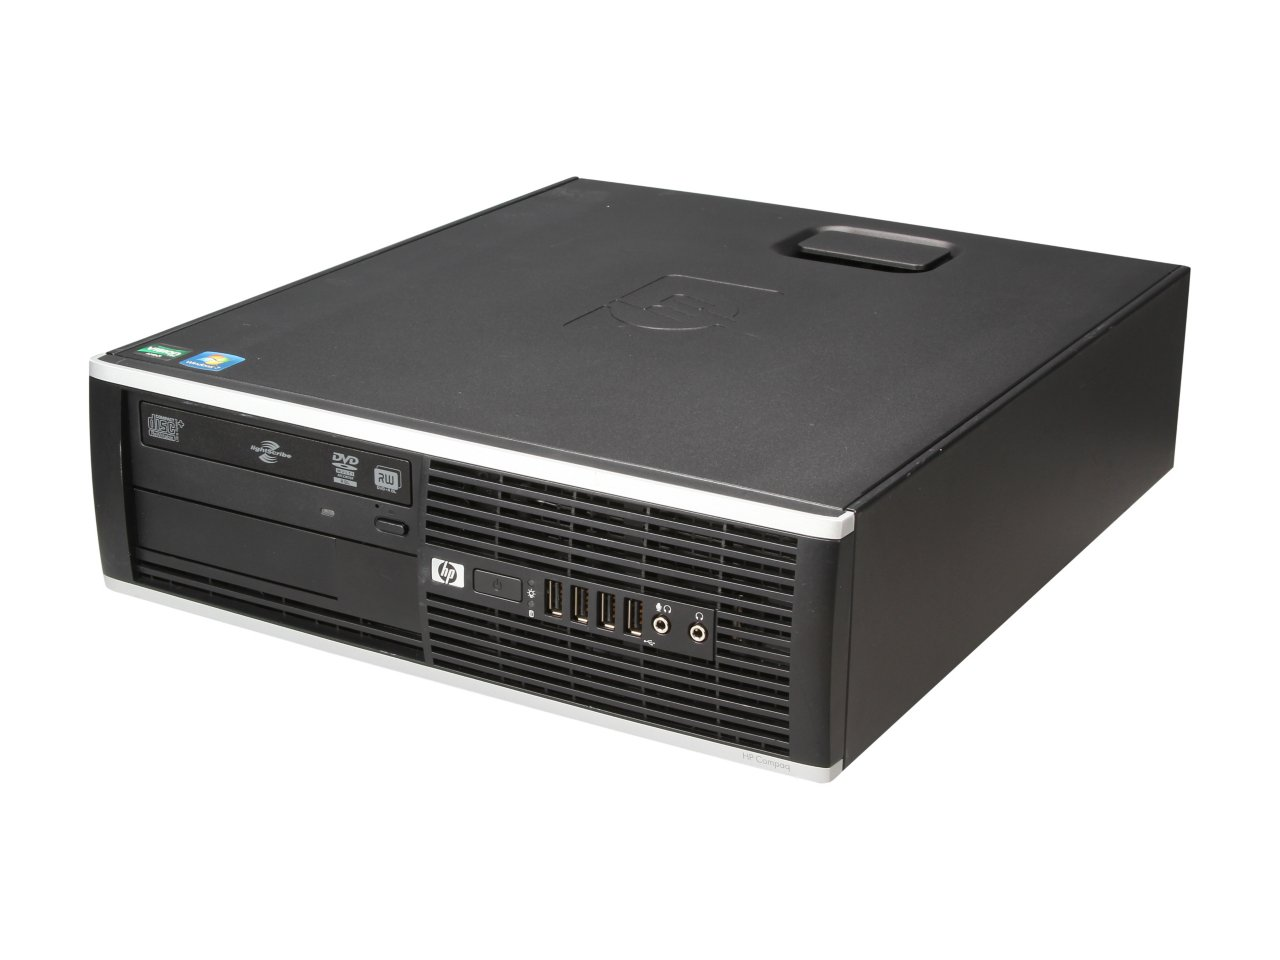 HP Compaq 6005 SFF with windows 7 license